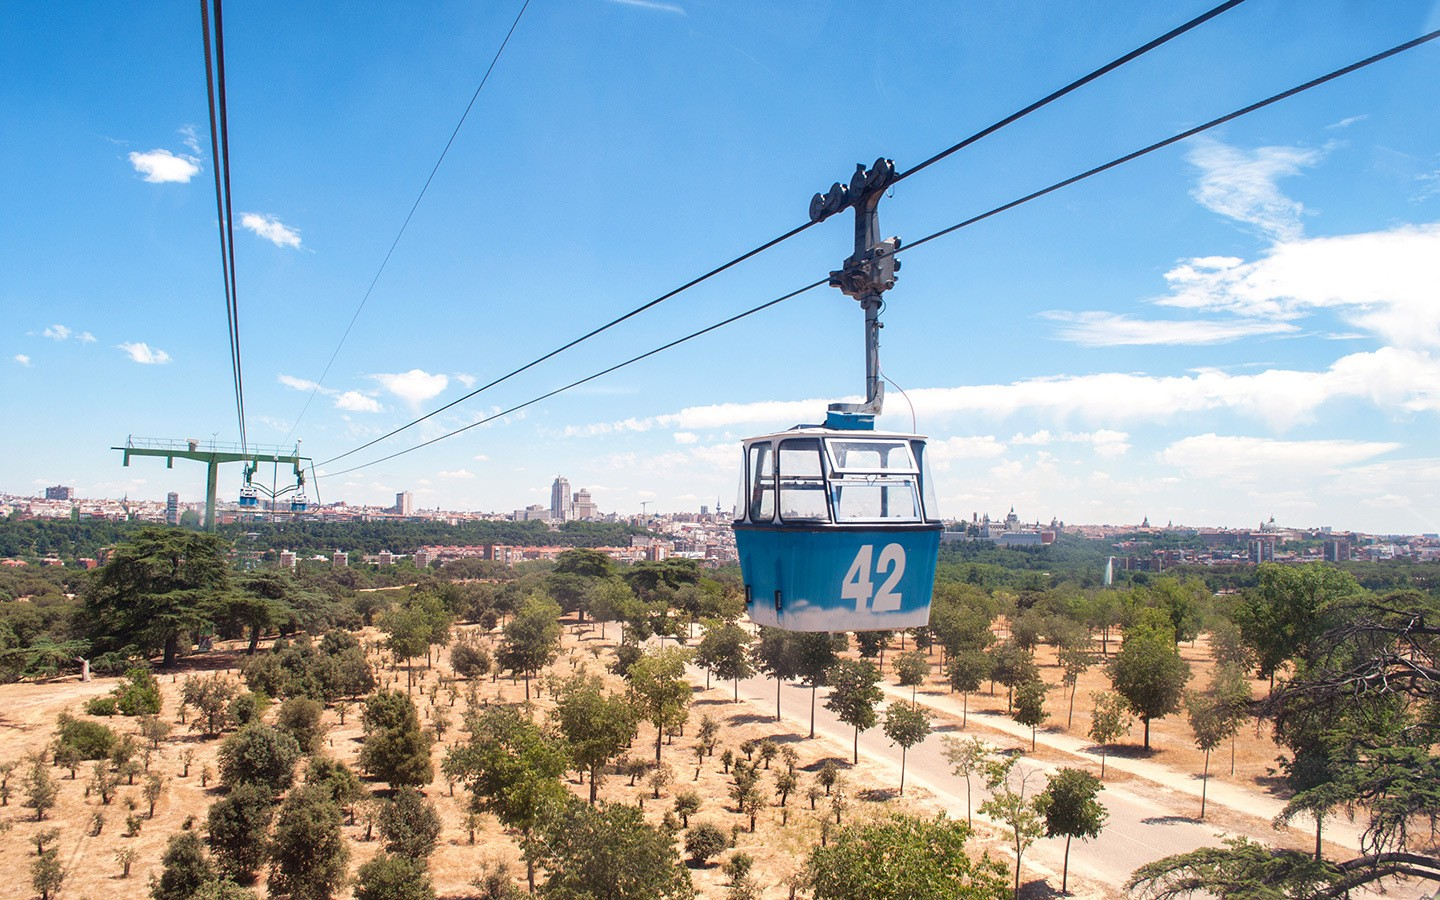 Teleférico de Madrid cable car